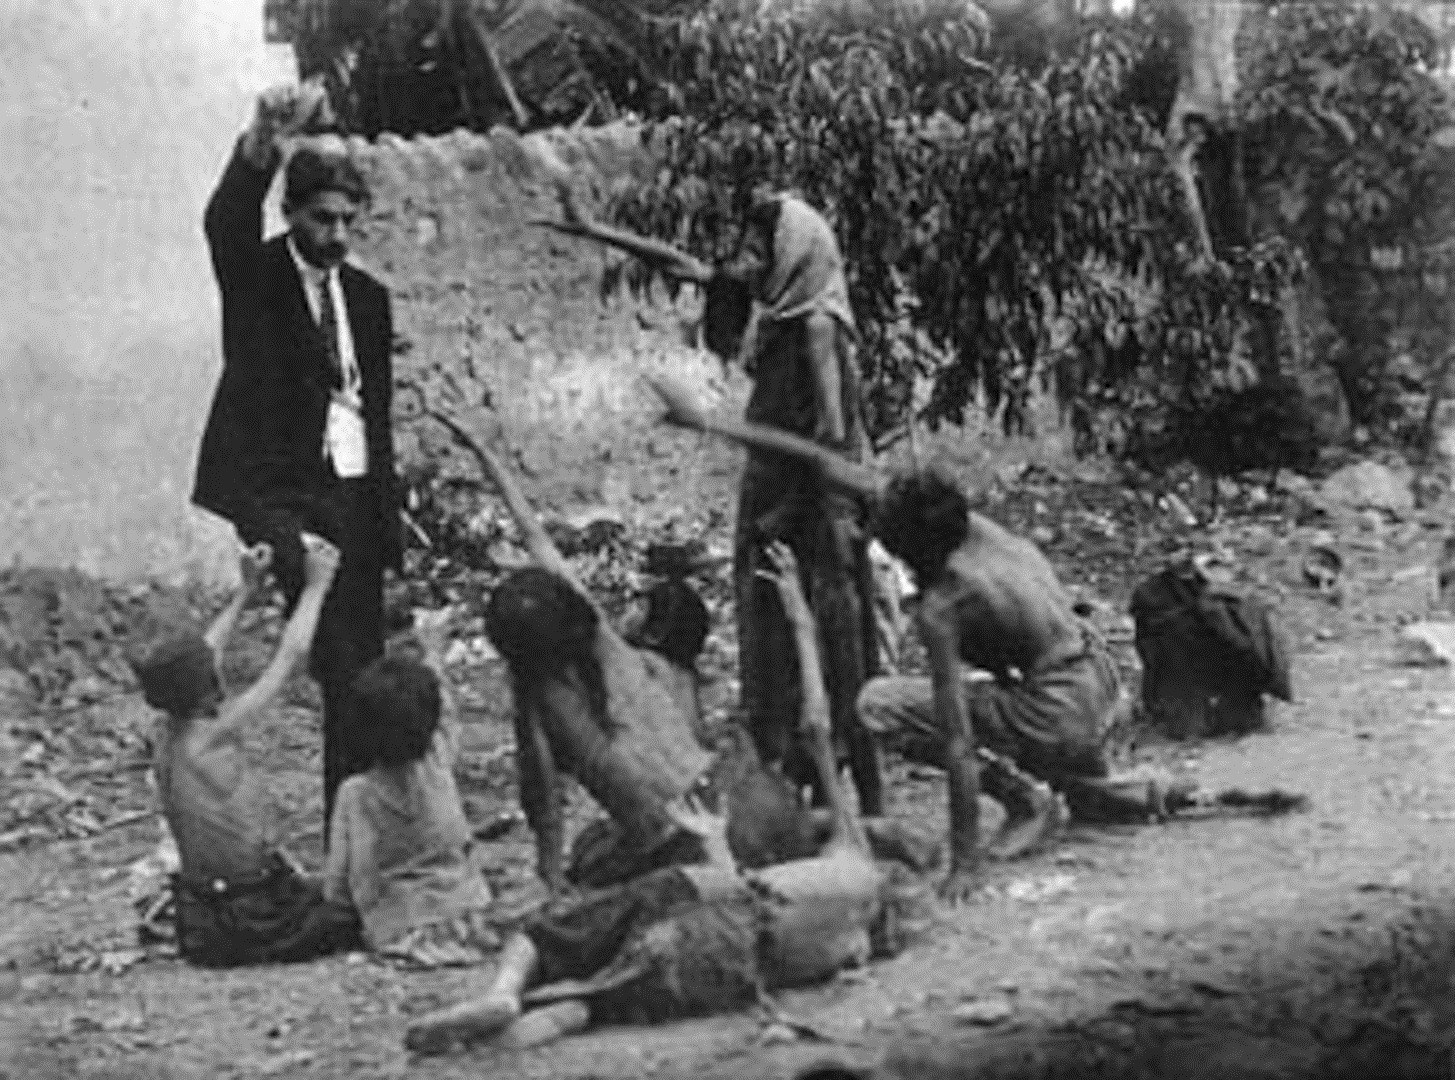 Turkish official teasing starved Armenian children by showing bread during the Armenian Genocide, 1915 - Imgur